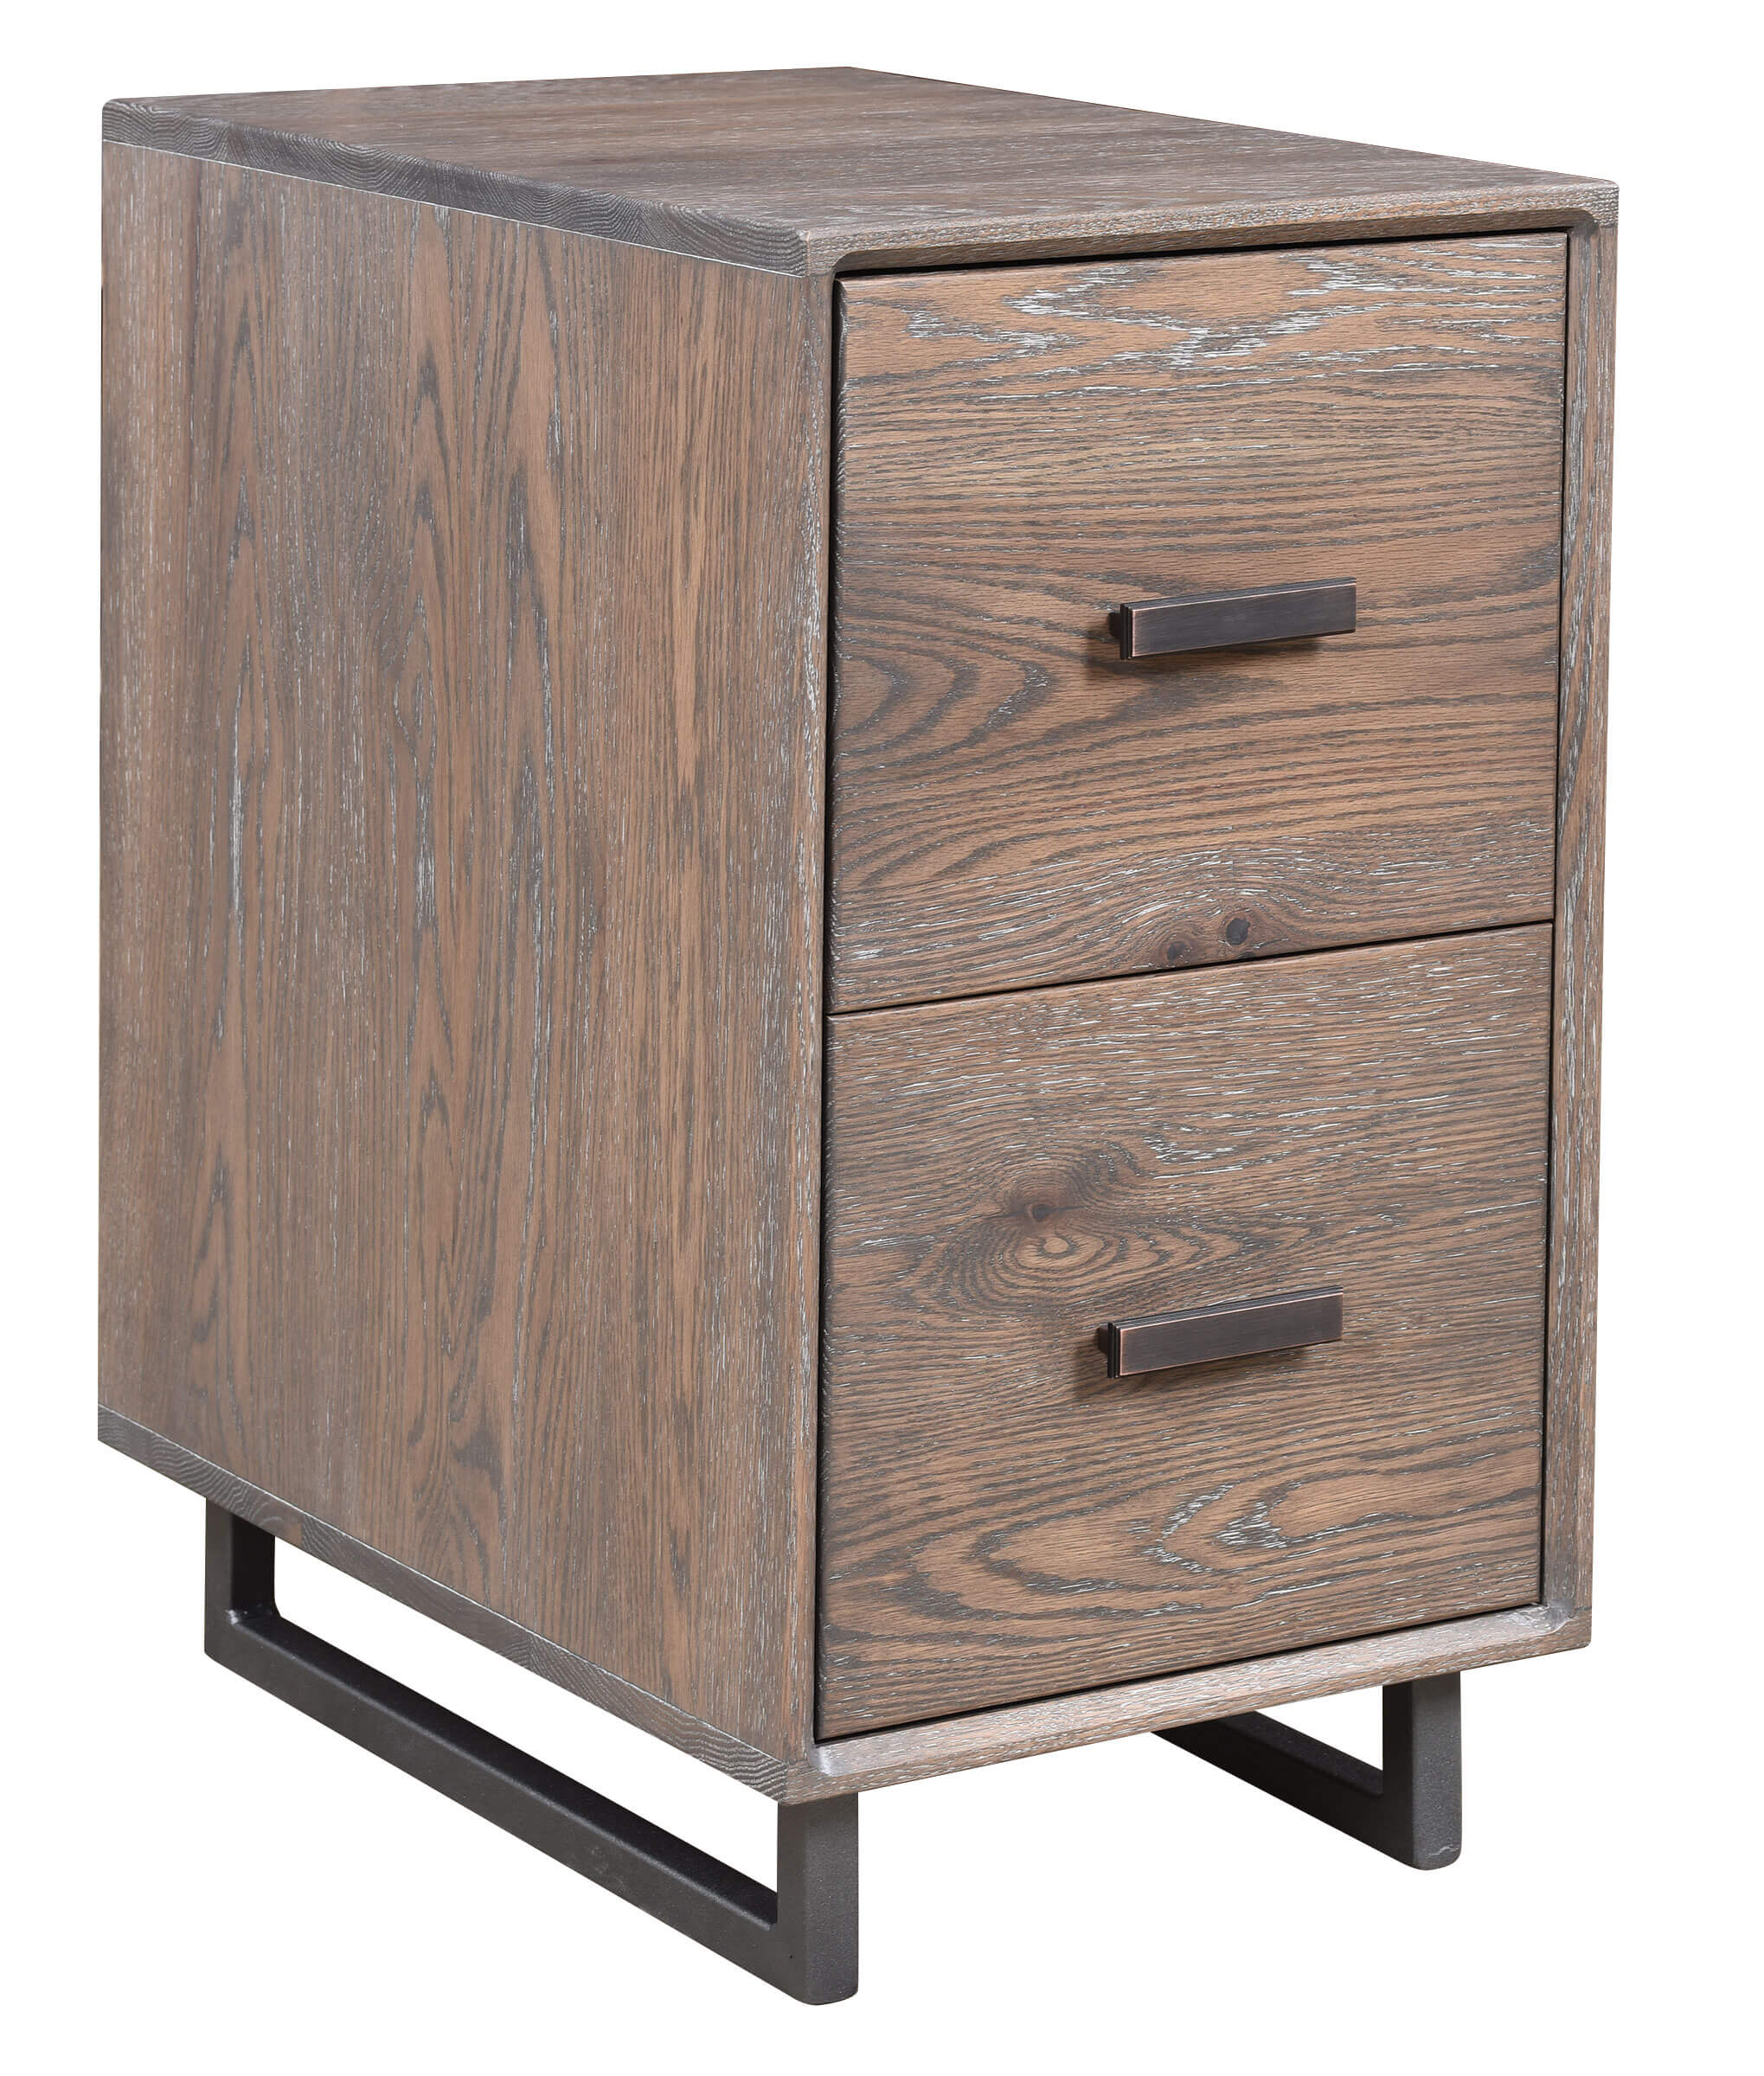 Capri File Cabinet with metal base